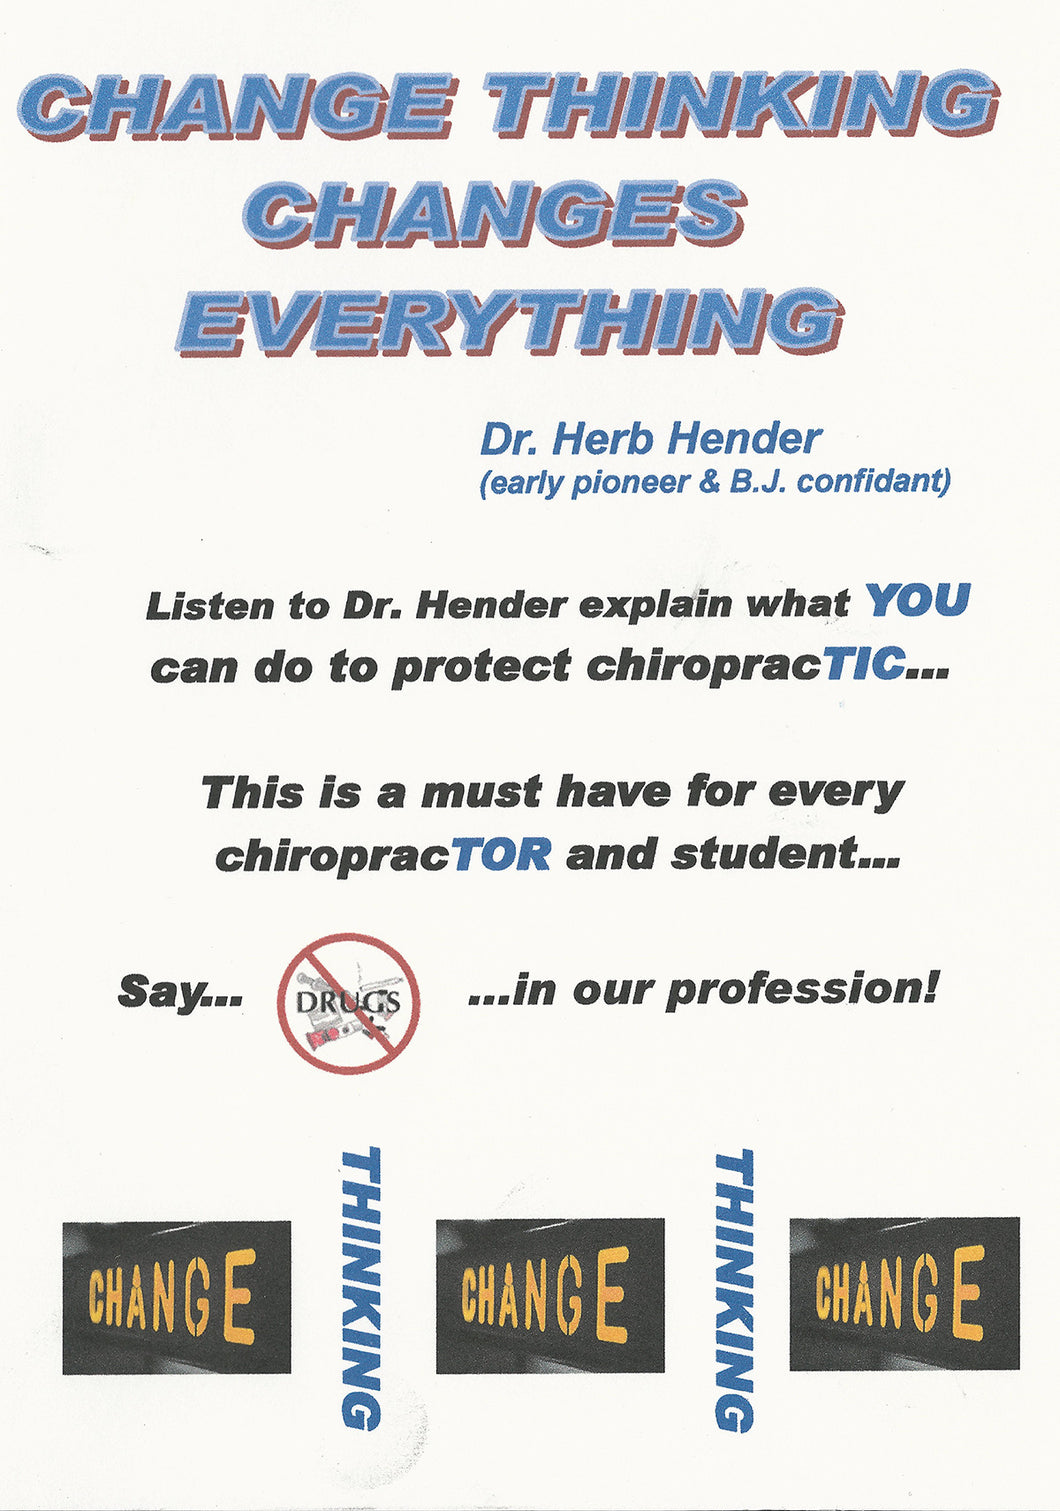 Change Thinking Changes Everything (A must for every DC & Student) MP3